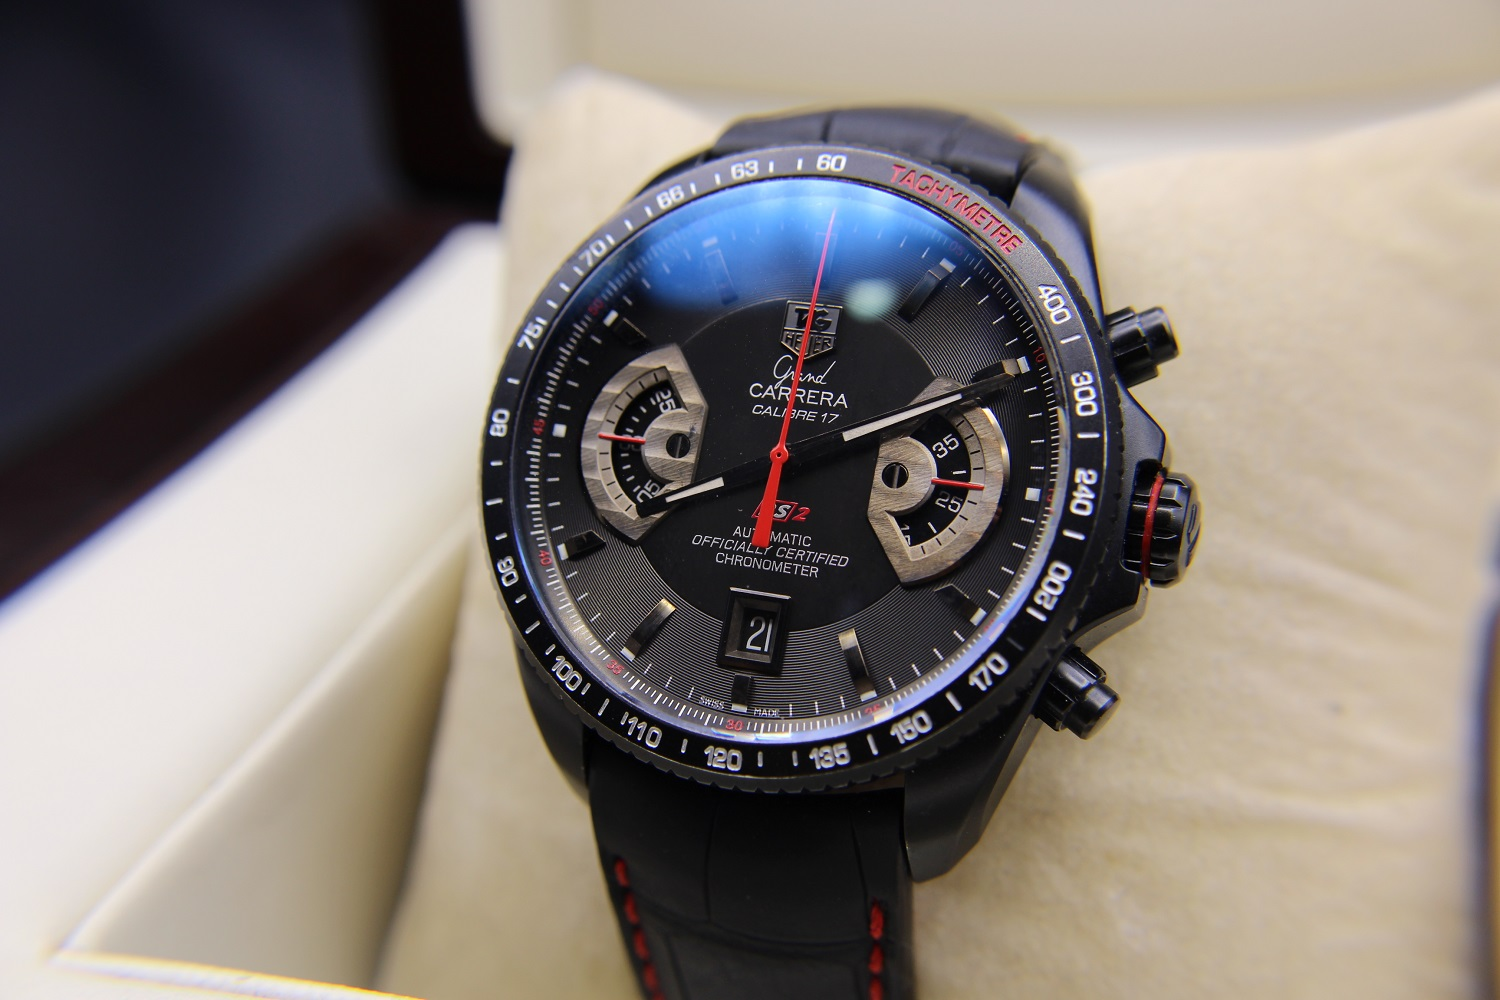 Tag heuer grand carrera calibre  хотите купить копию часов tag heuer grand carrera calibre 17 rs2 оптом?